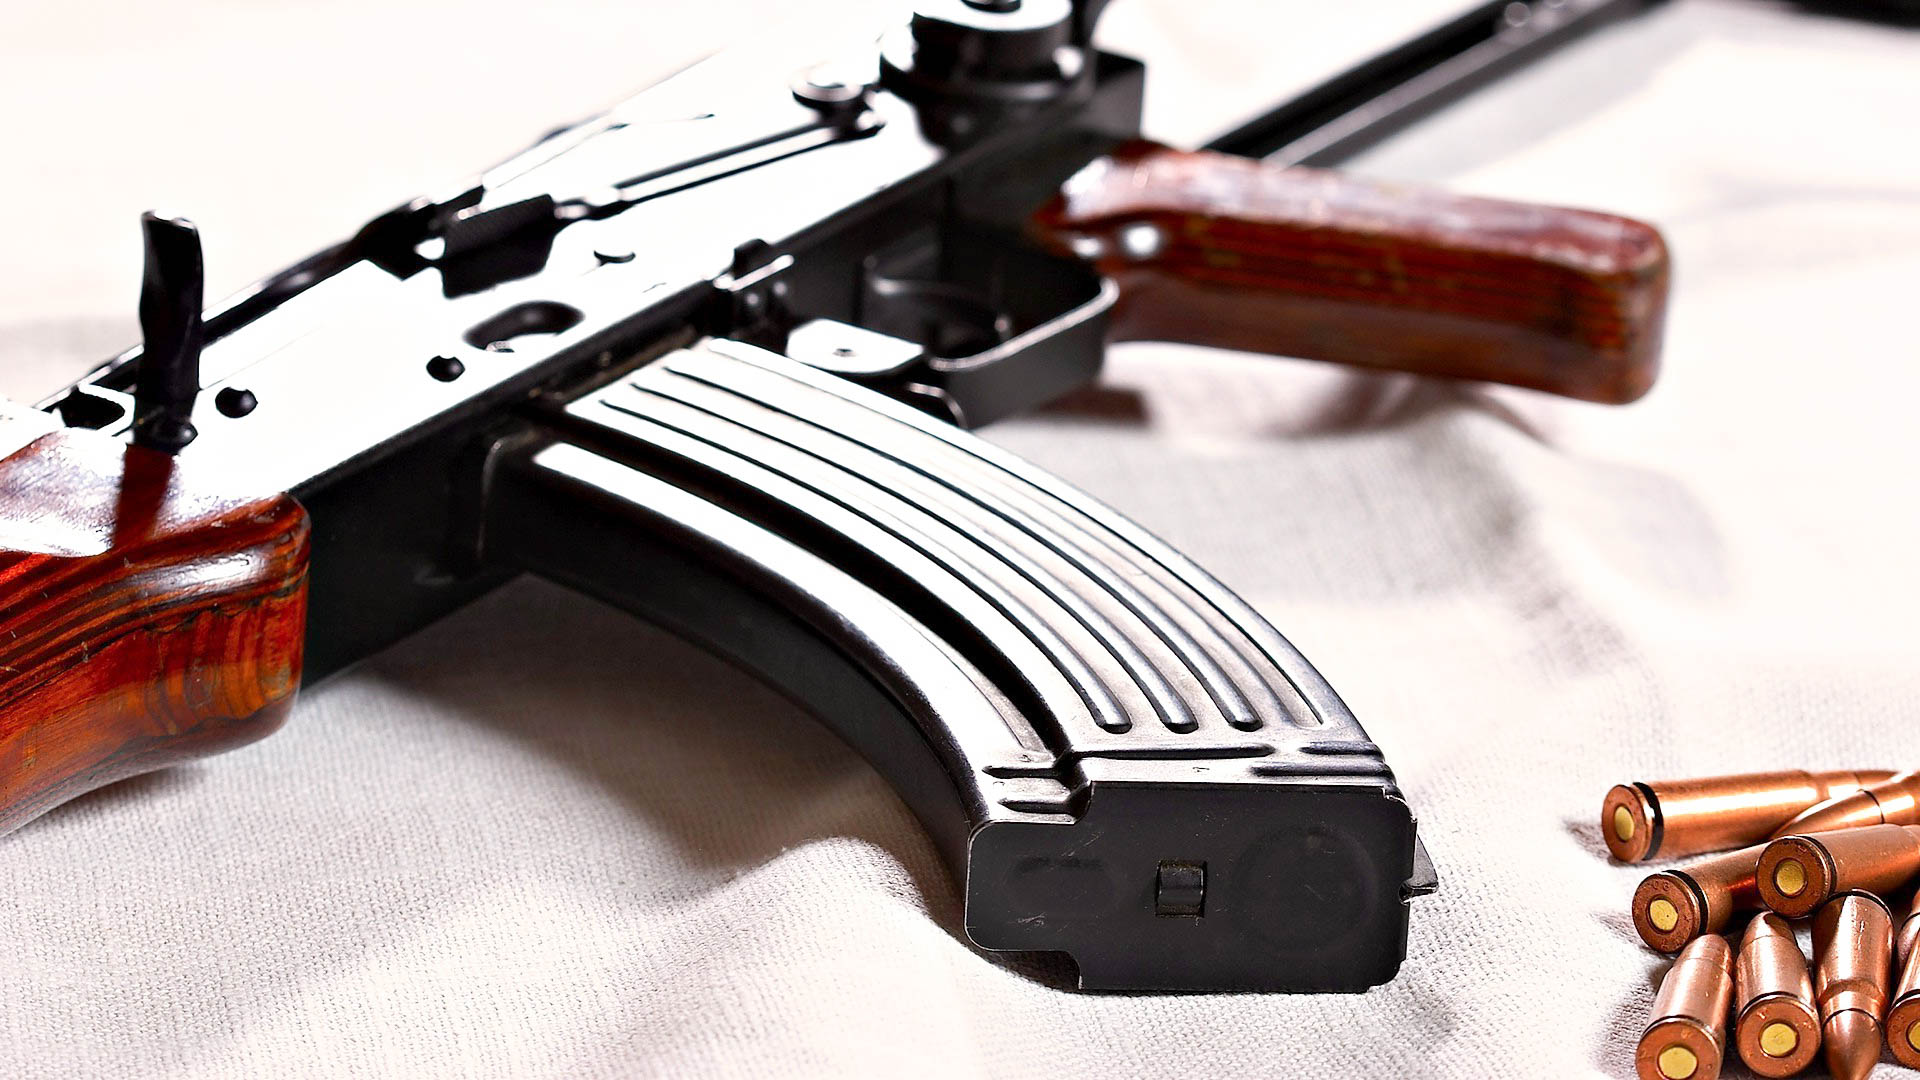 ak 47 awesome hd wallpapers pictures in high resolution